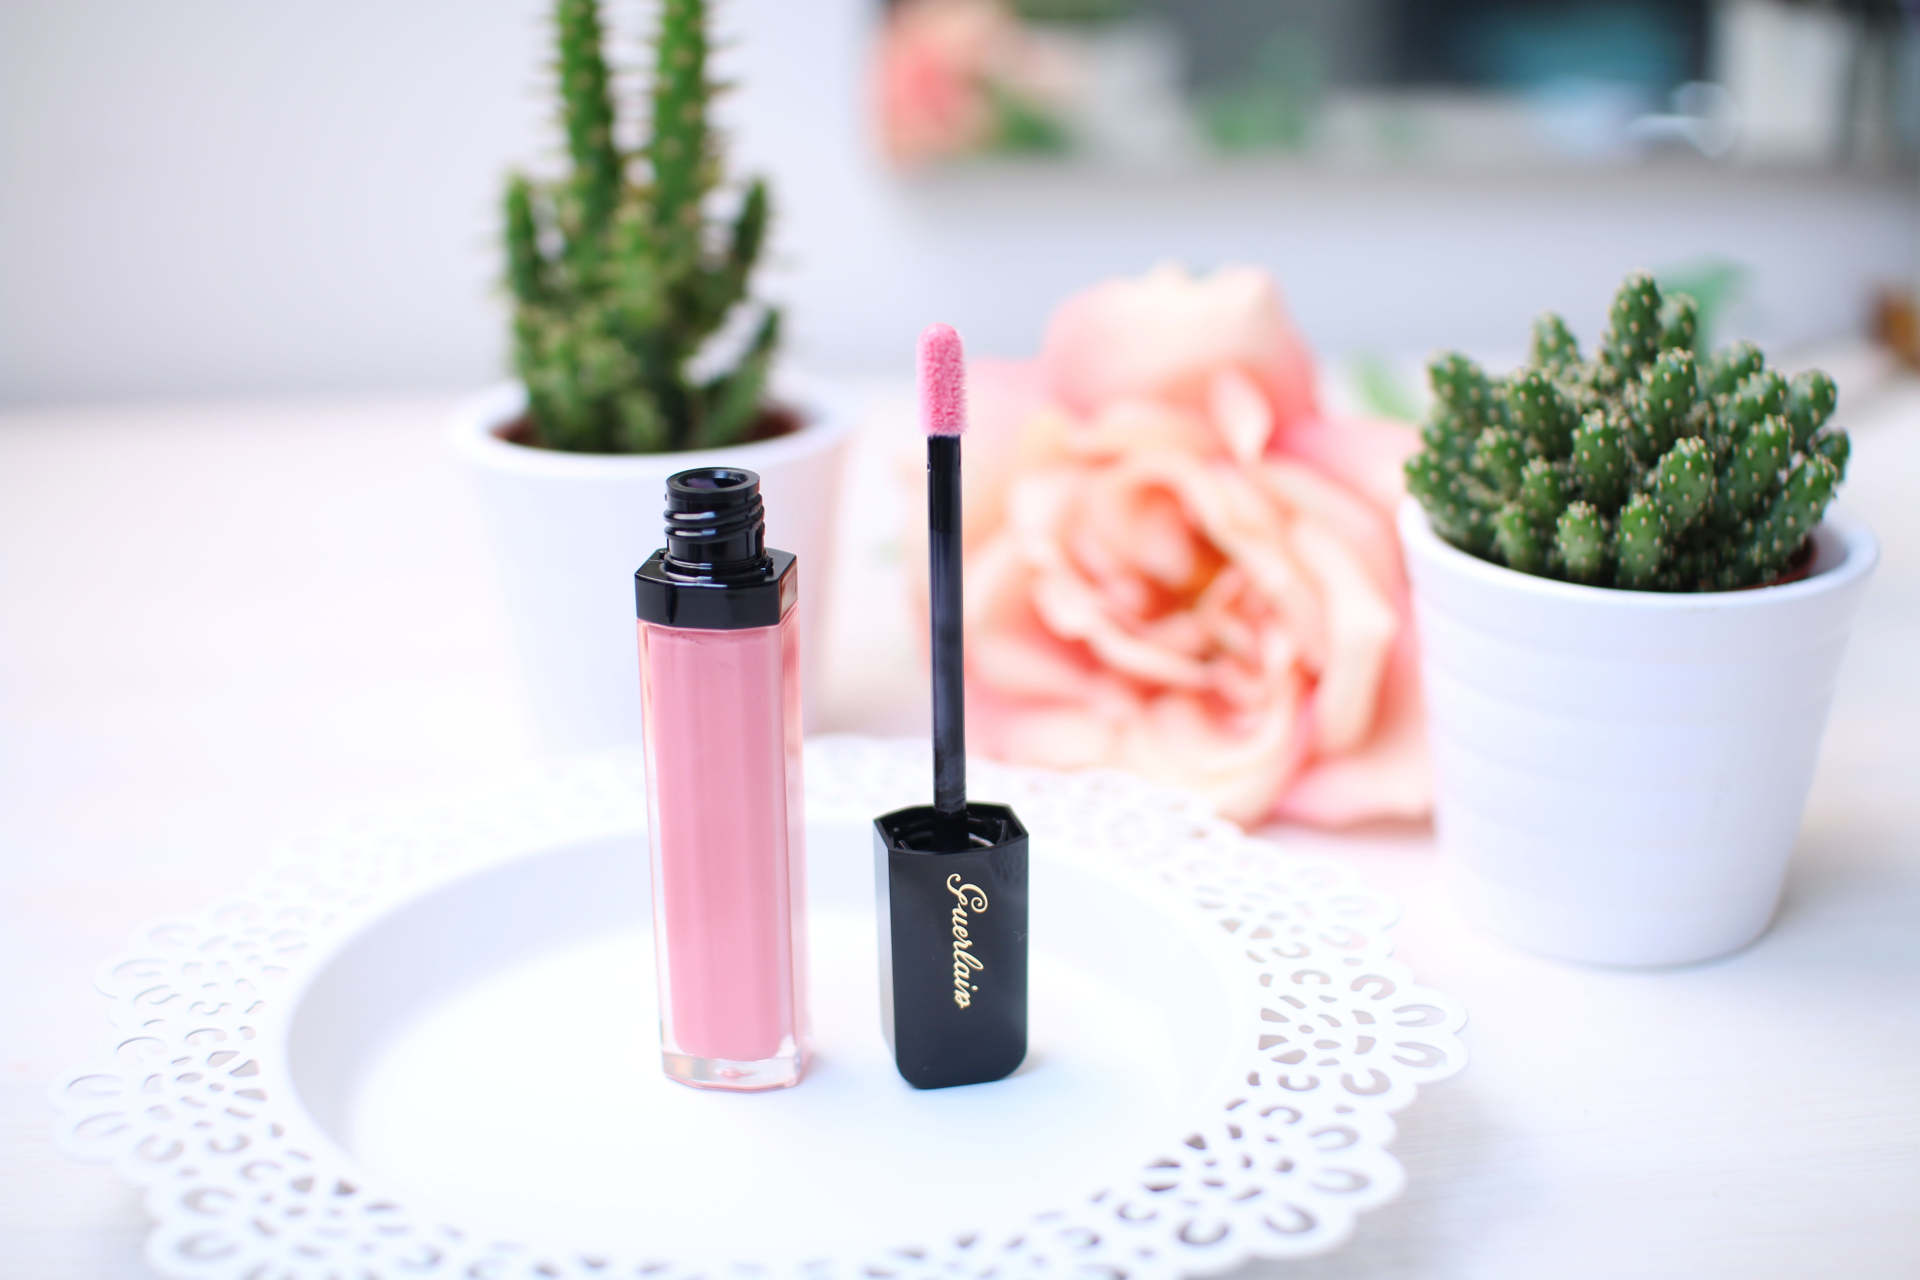 guerlain candy hop luxury lip balm comparison inthefrow